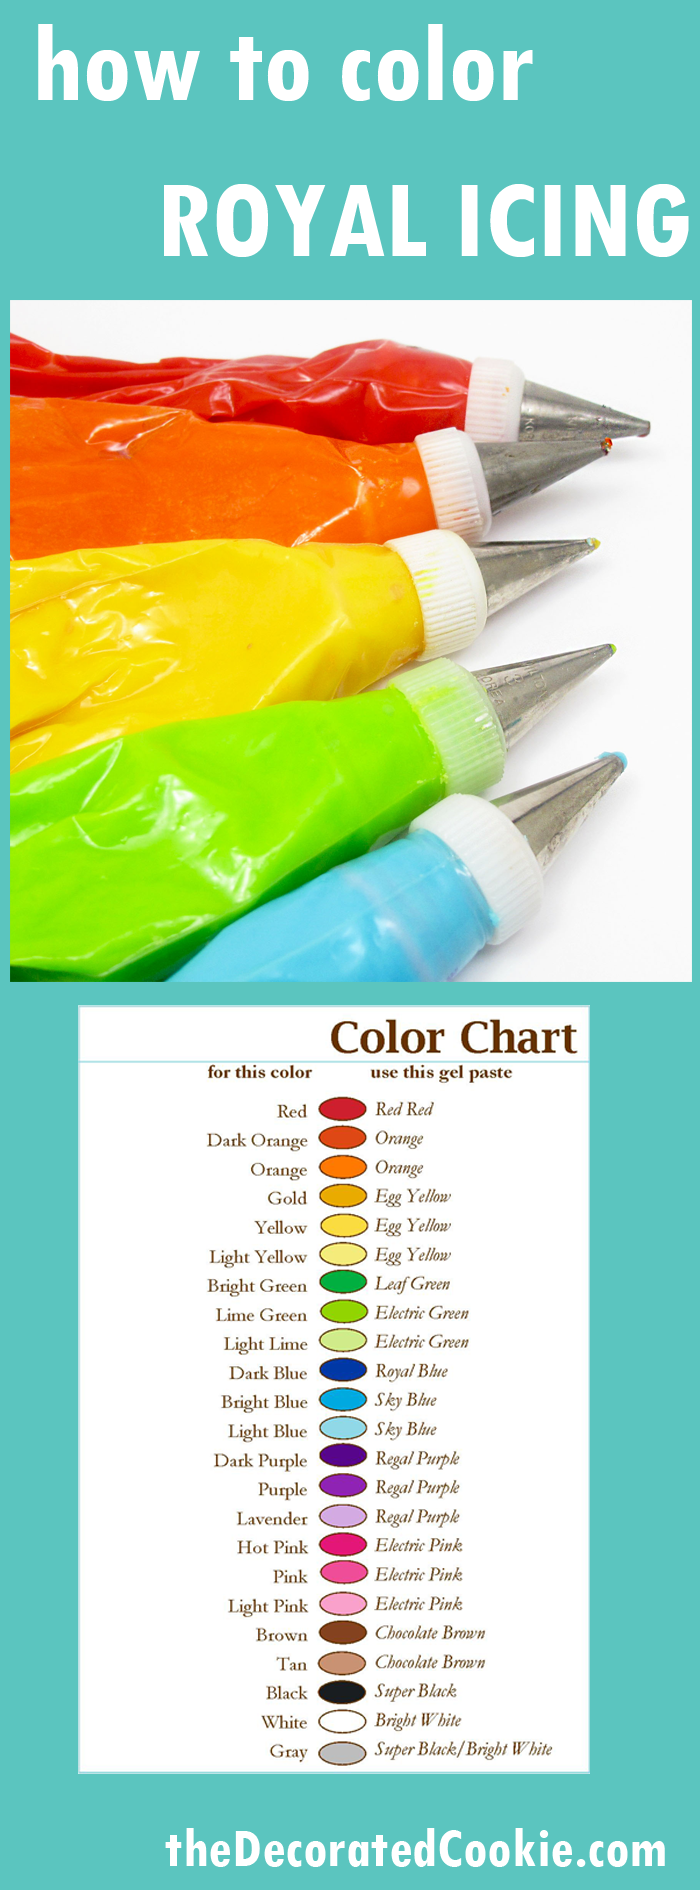 royal icing color chart | Cookie decorating, Royal icing and Frostings